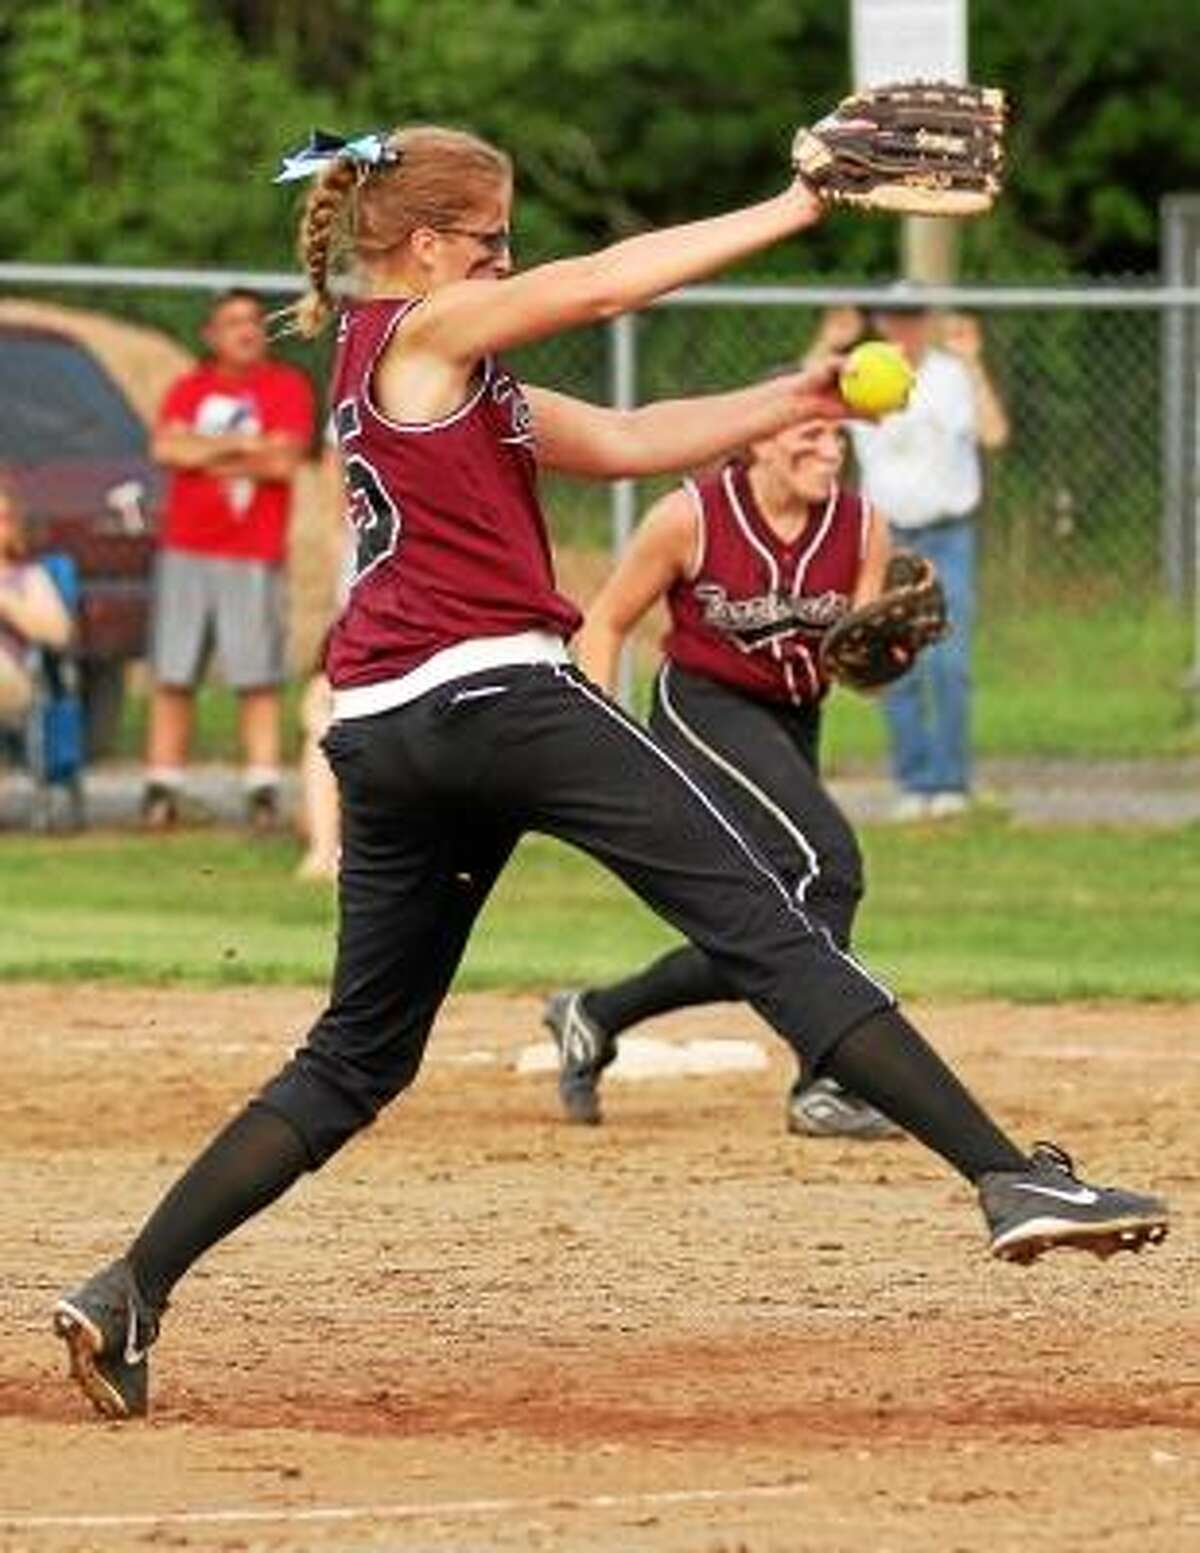 Marianne Killackey/Special to the Register Citizen Sydney Matzko struck out 11 batters in her team's 2-1 lose to Bunnell.